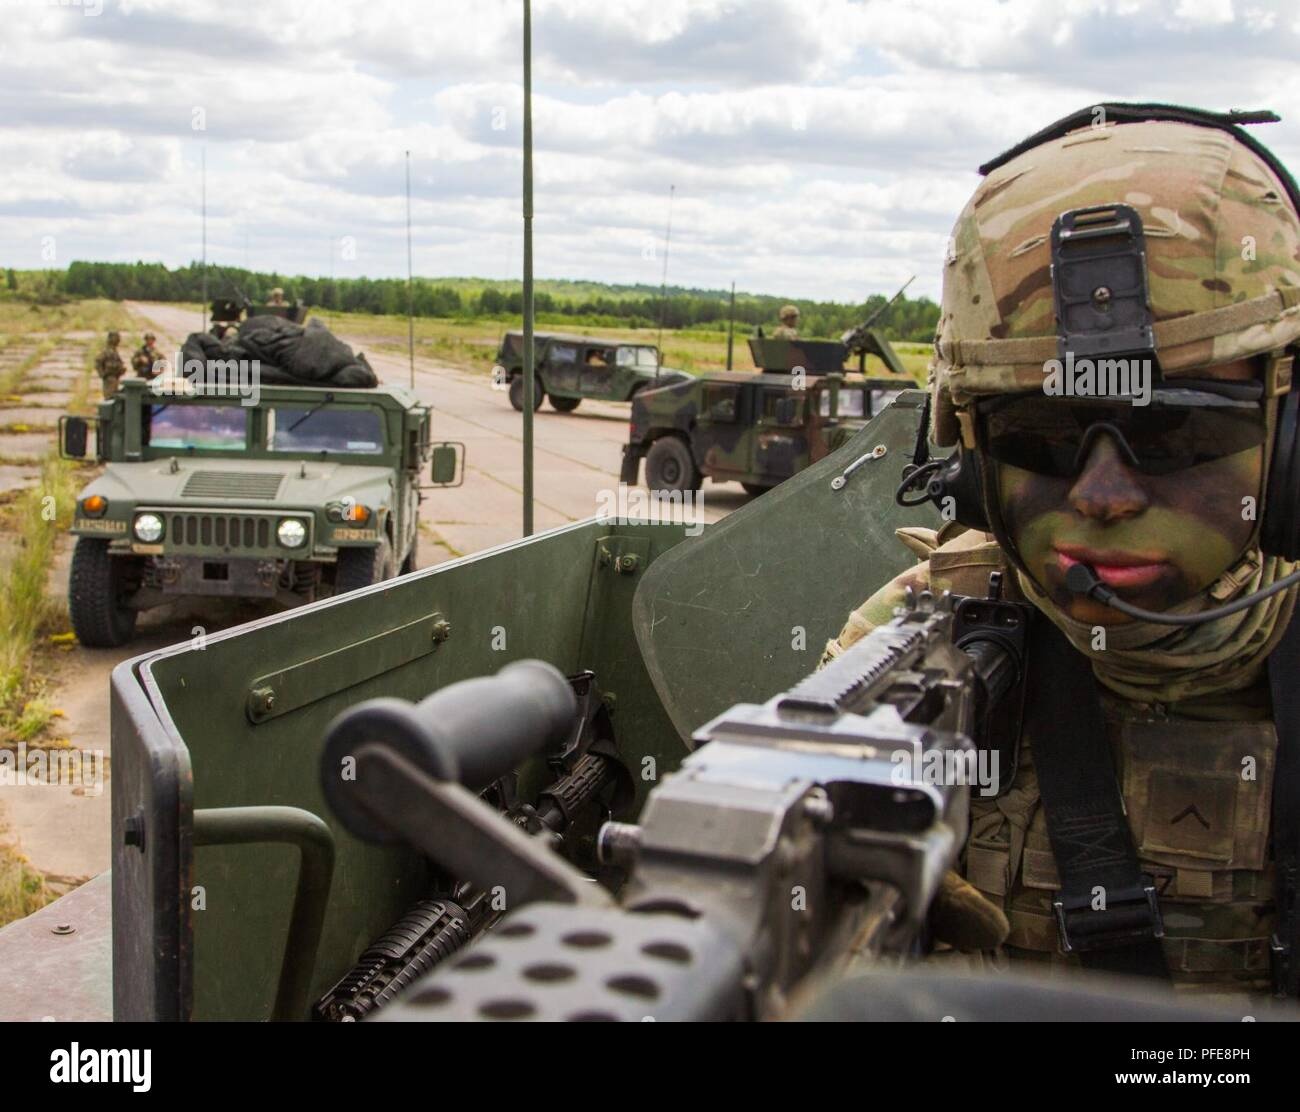 527th Military Police Company High Resolution Stock Photography And Images Alamy